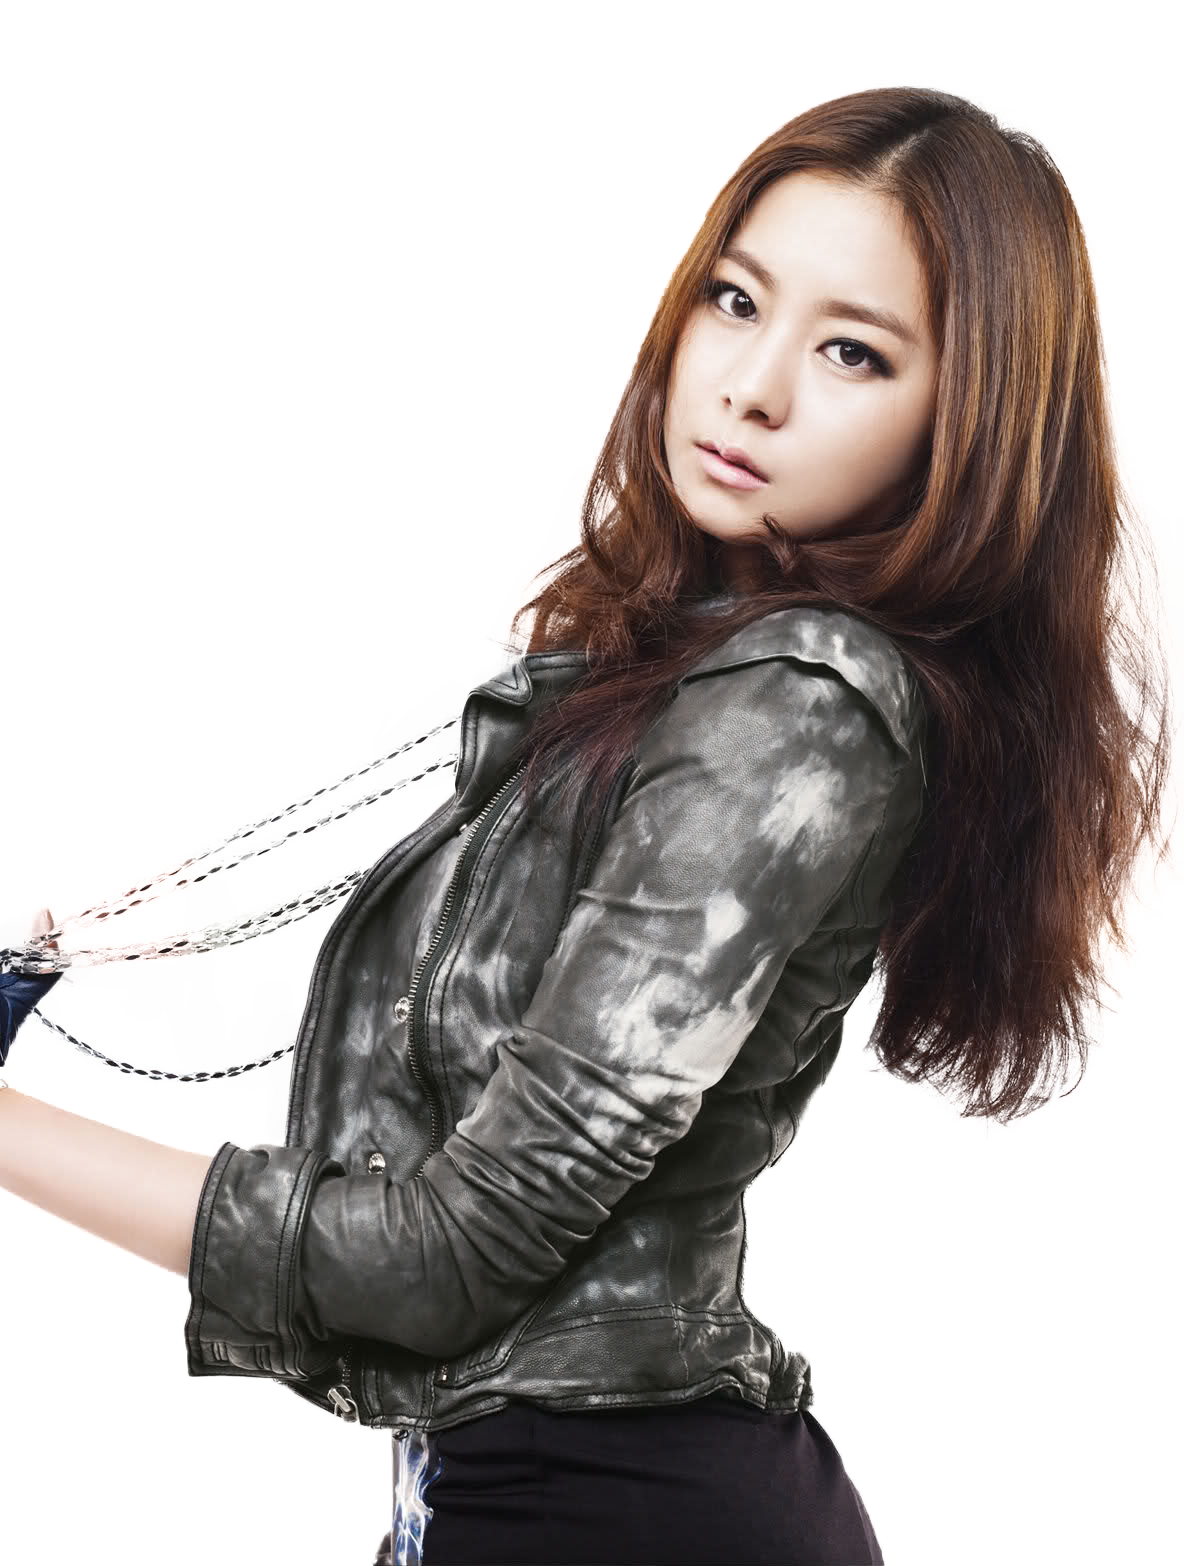 http://fc00.deviantart.net/fs70/f/2013/147/0/9/uee__after_school__png__render__by_gajmeditions-d66s2rl.png